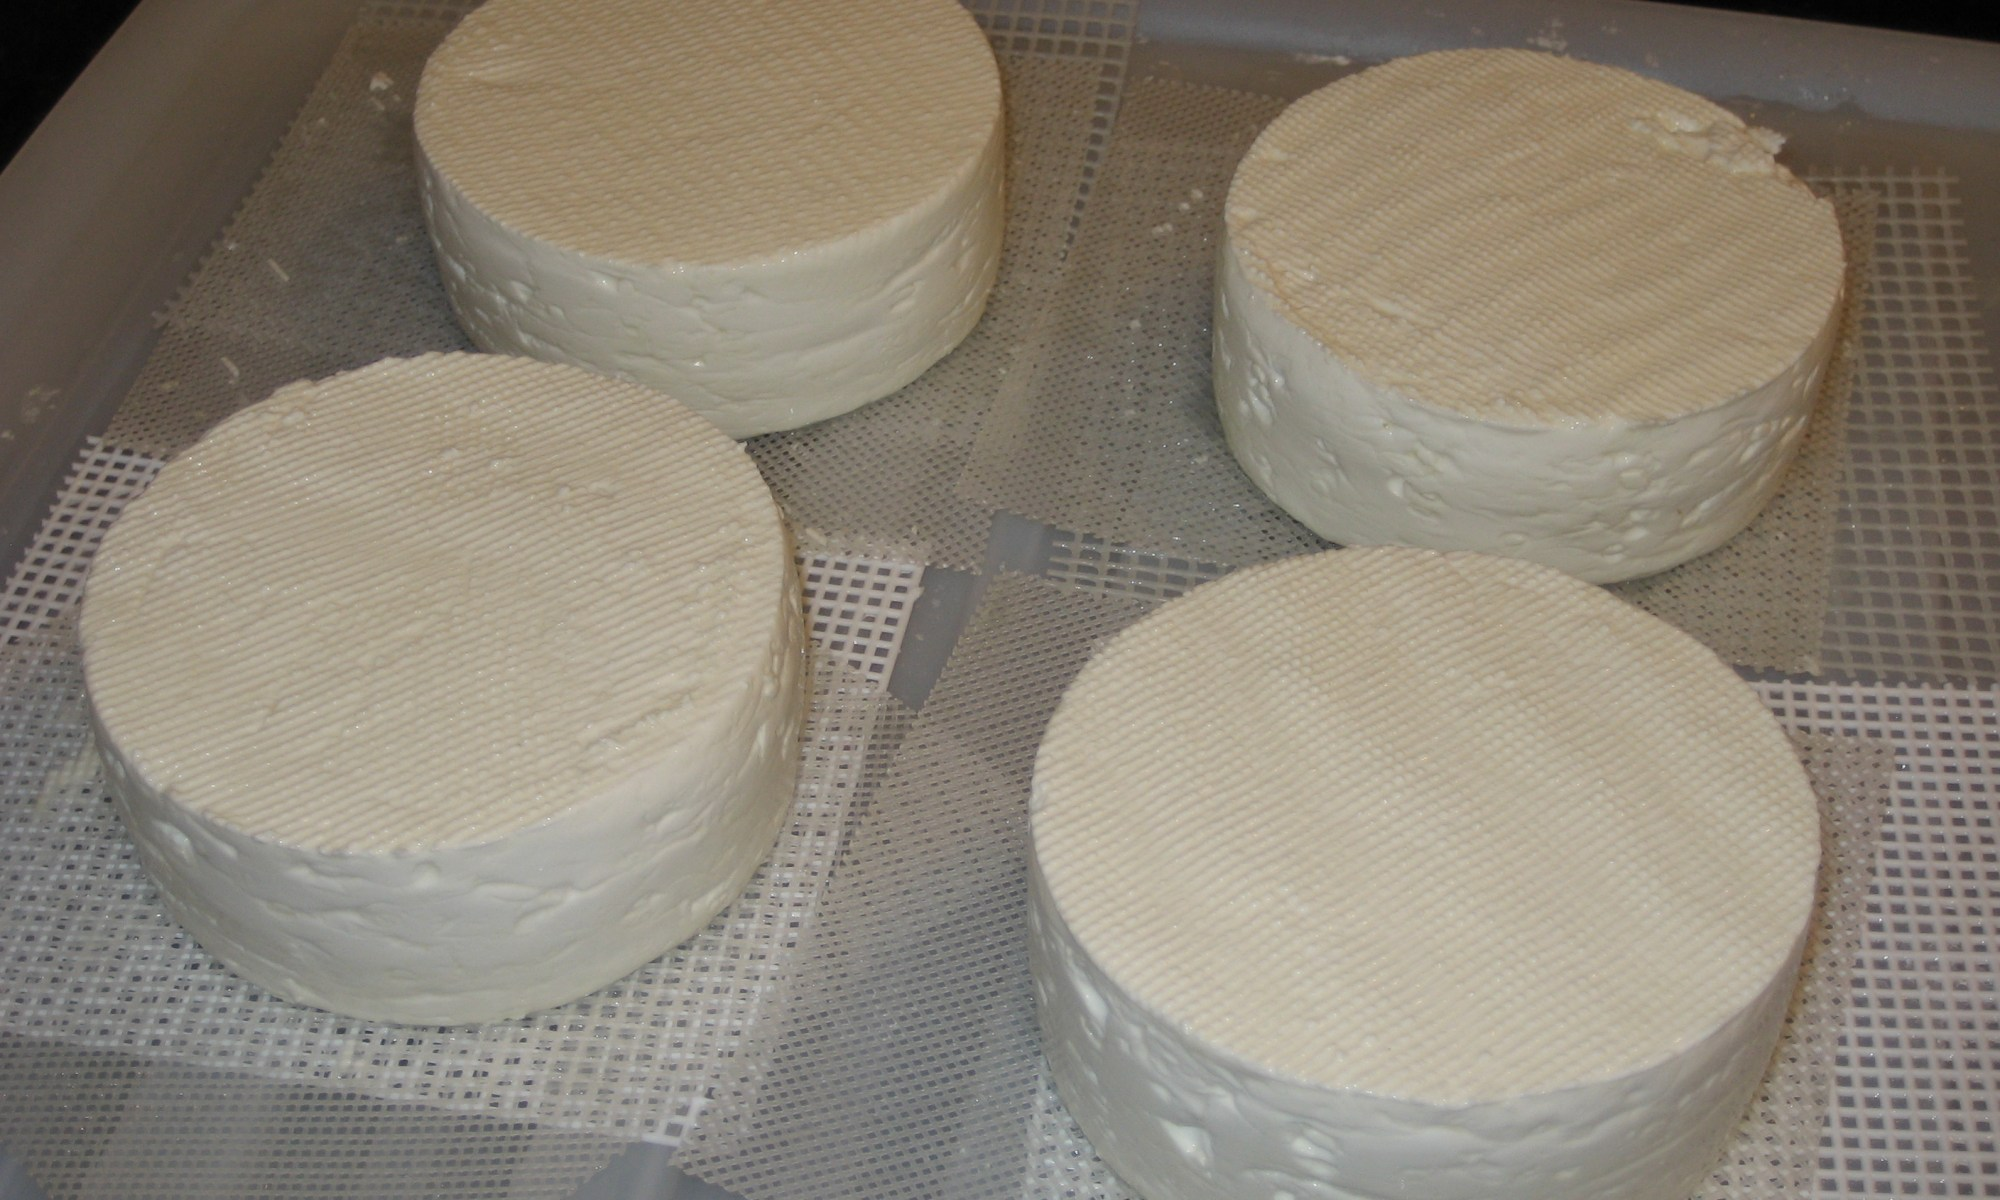 Four 10 cm diameter Camemberts after dry salting.